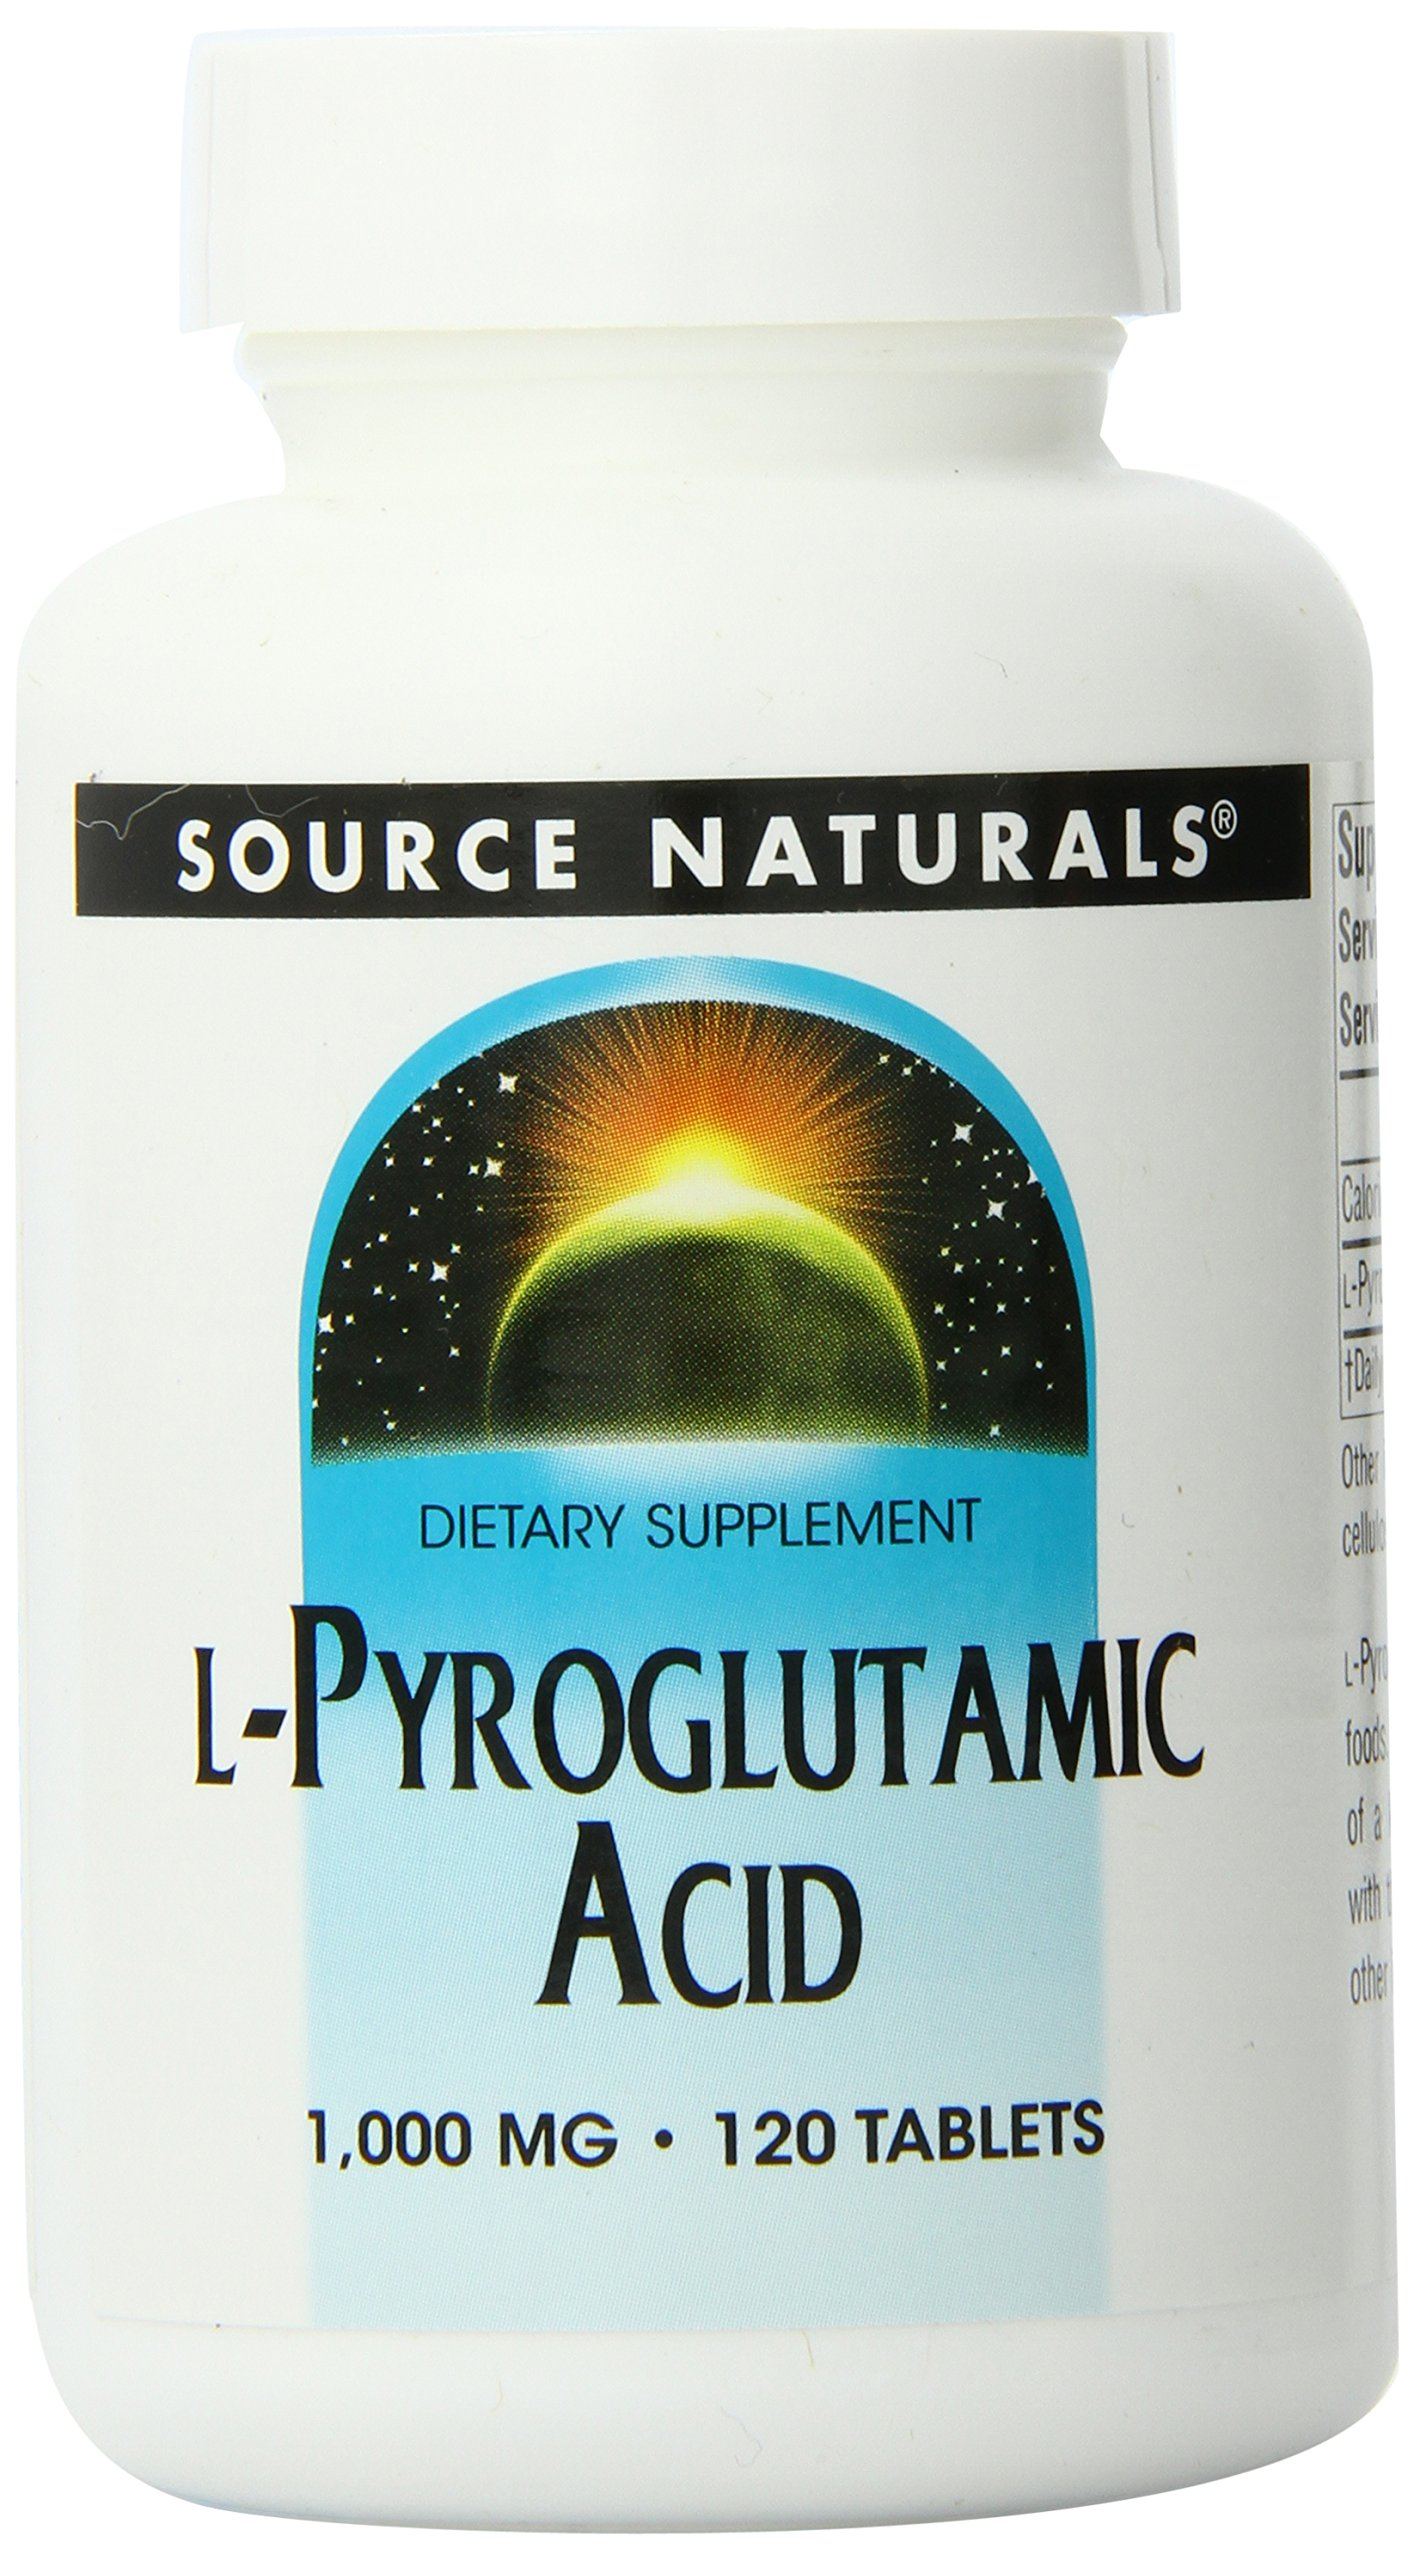 Source Naturals L-Pyroglutamic Acid, 1000mg, 120 Tablets (Pack of 12)